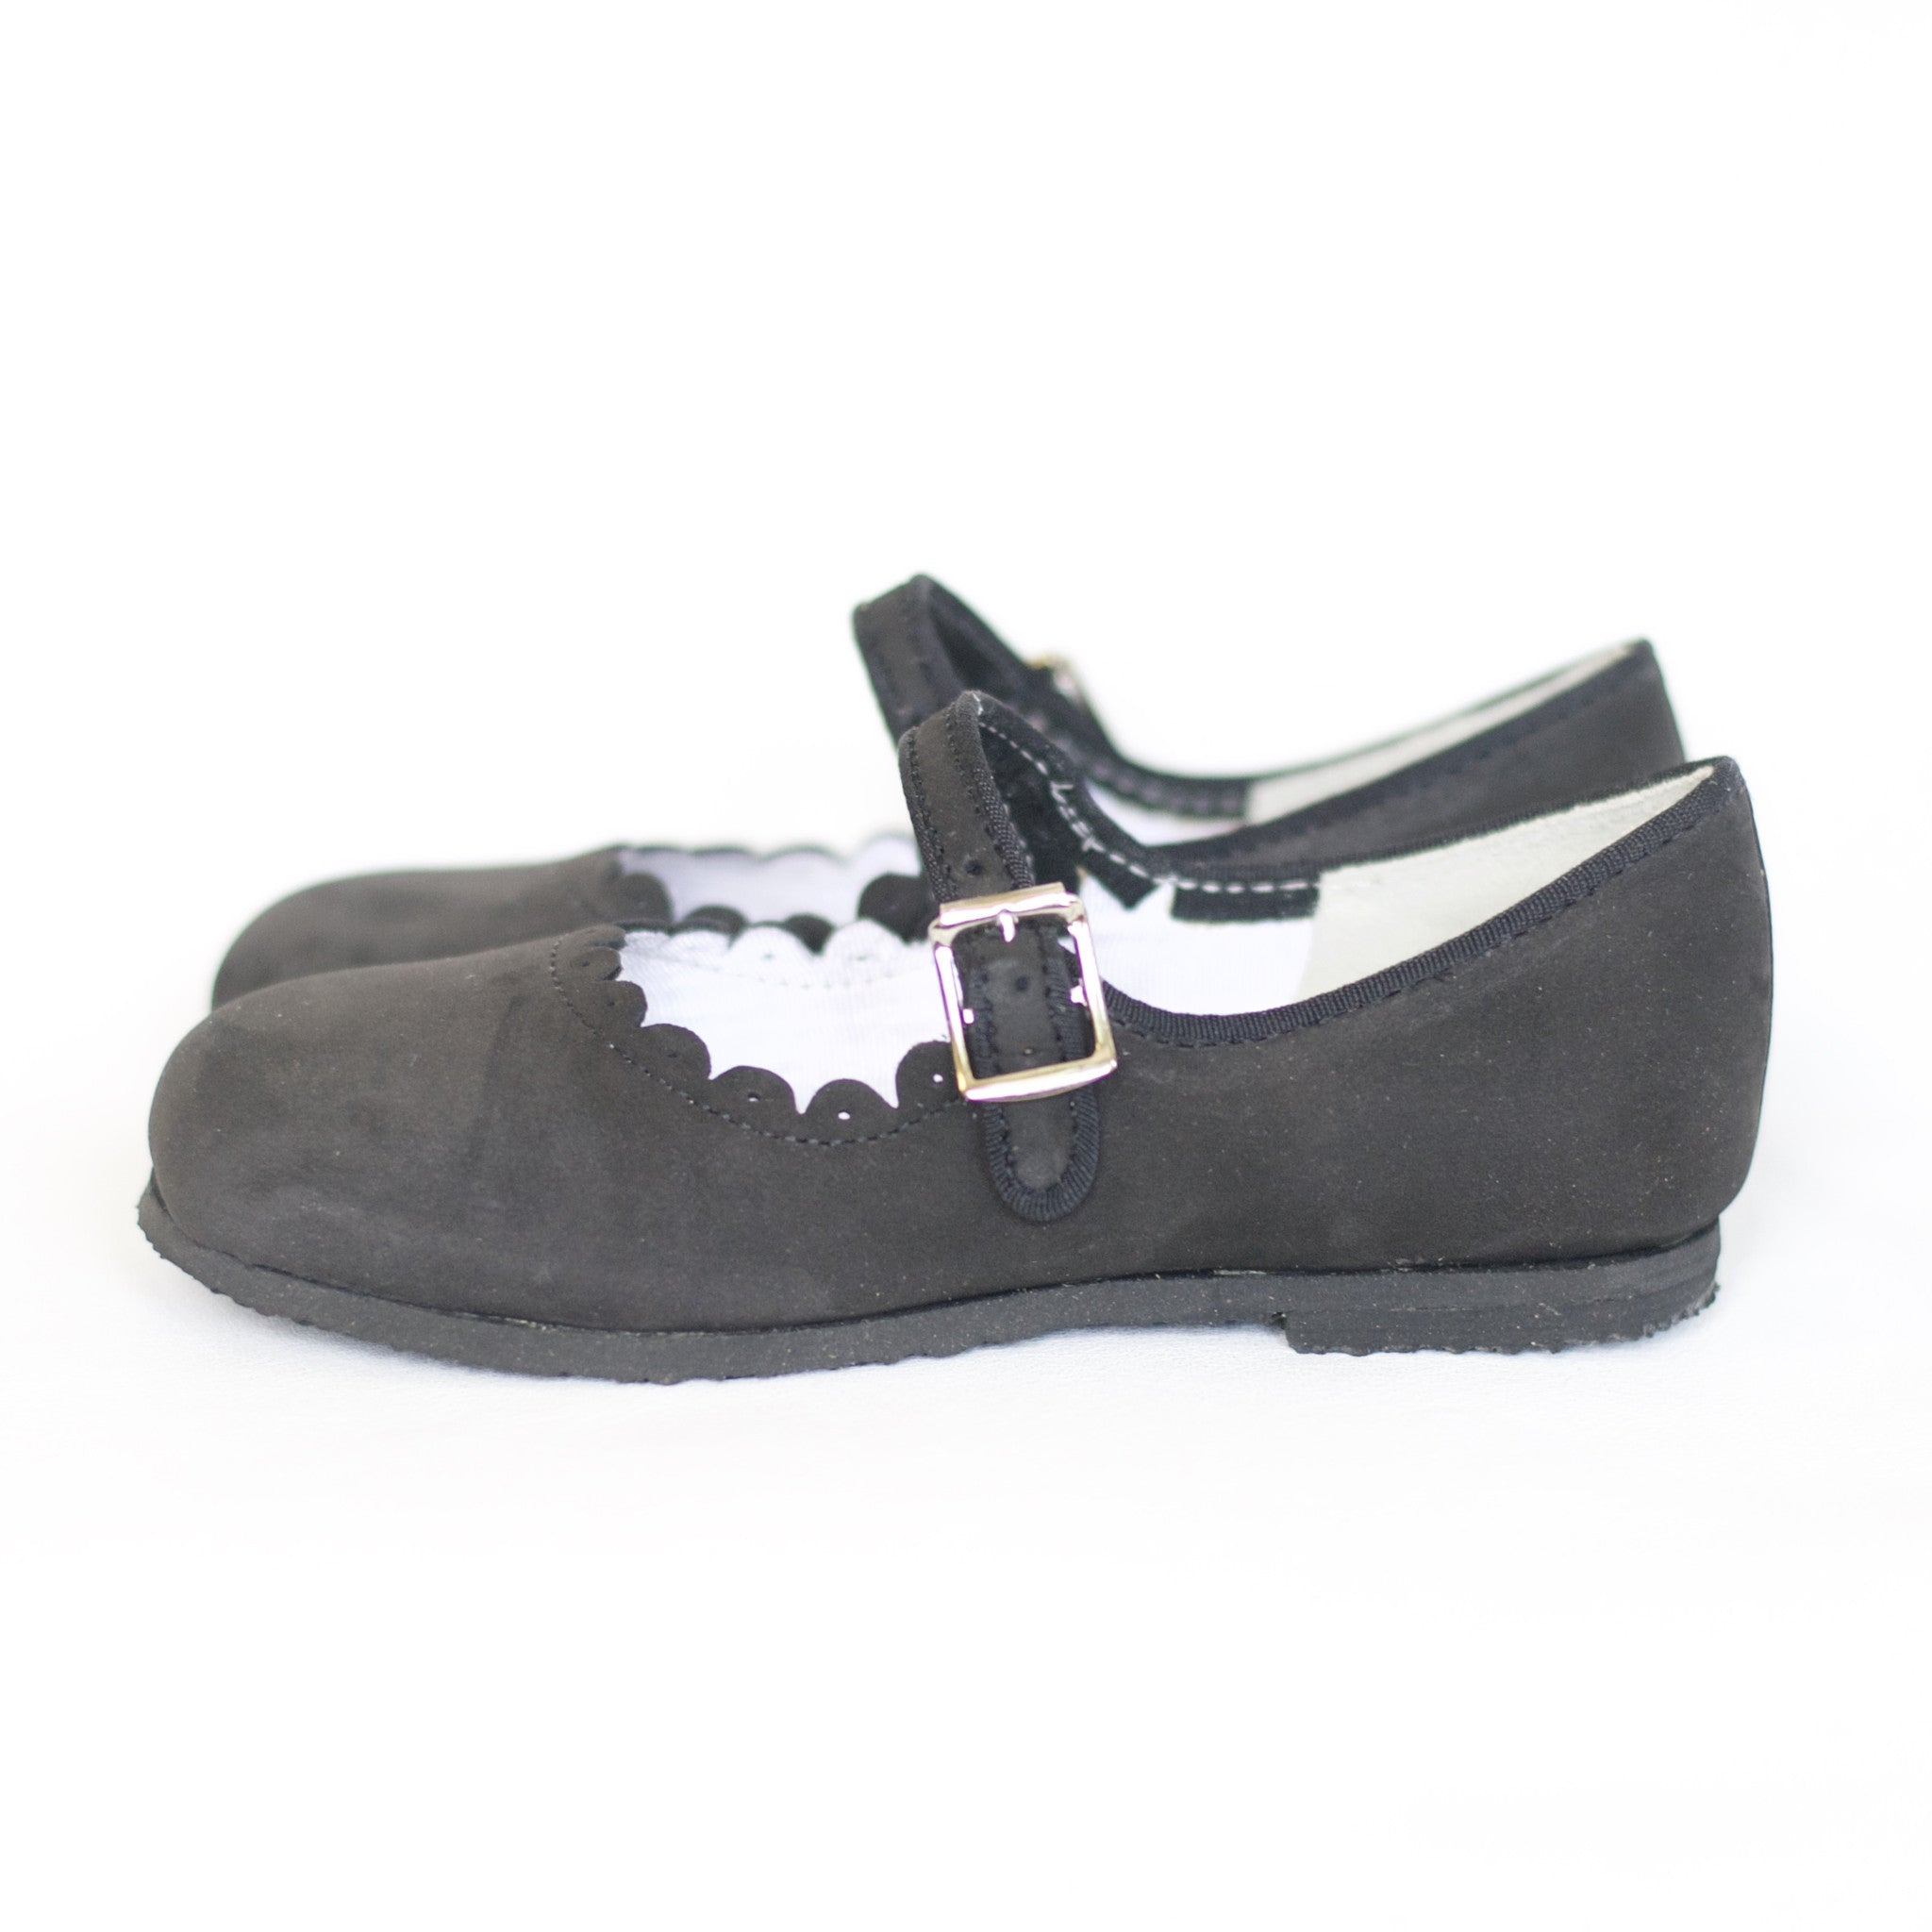 charcoal scalloped mary janes, deep grey nubuck leather